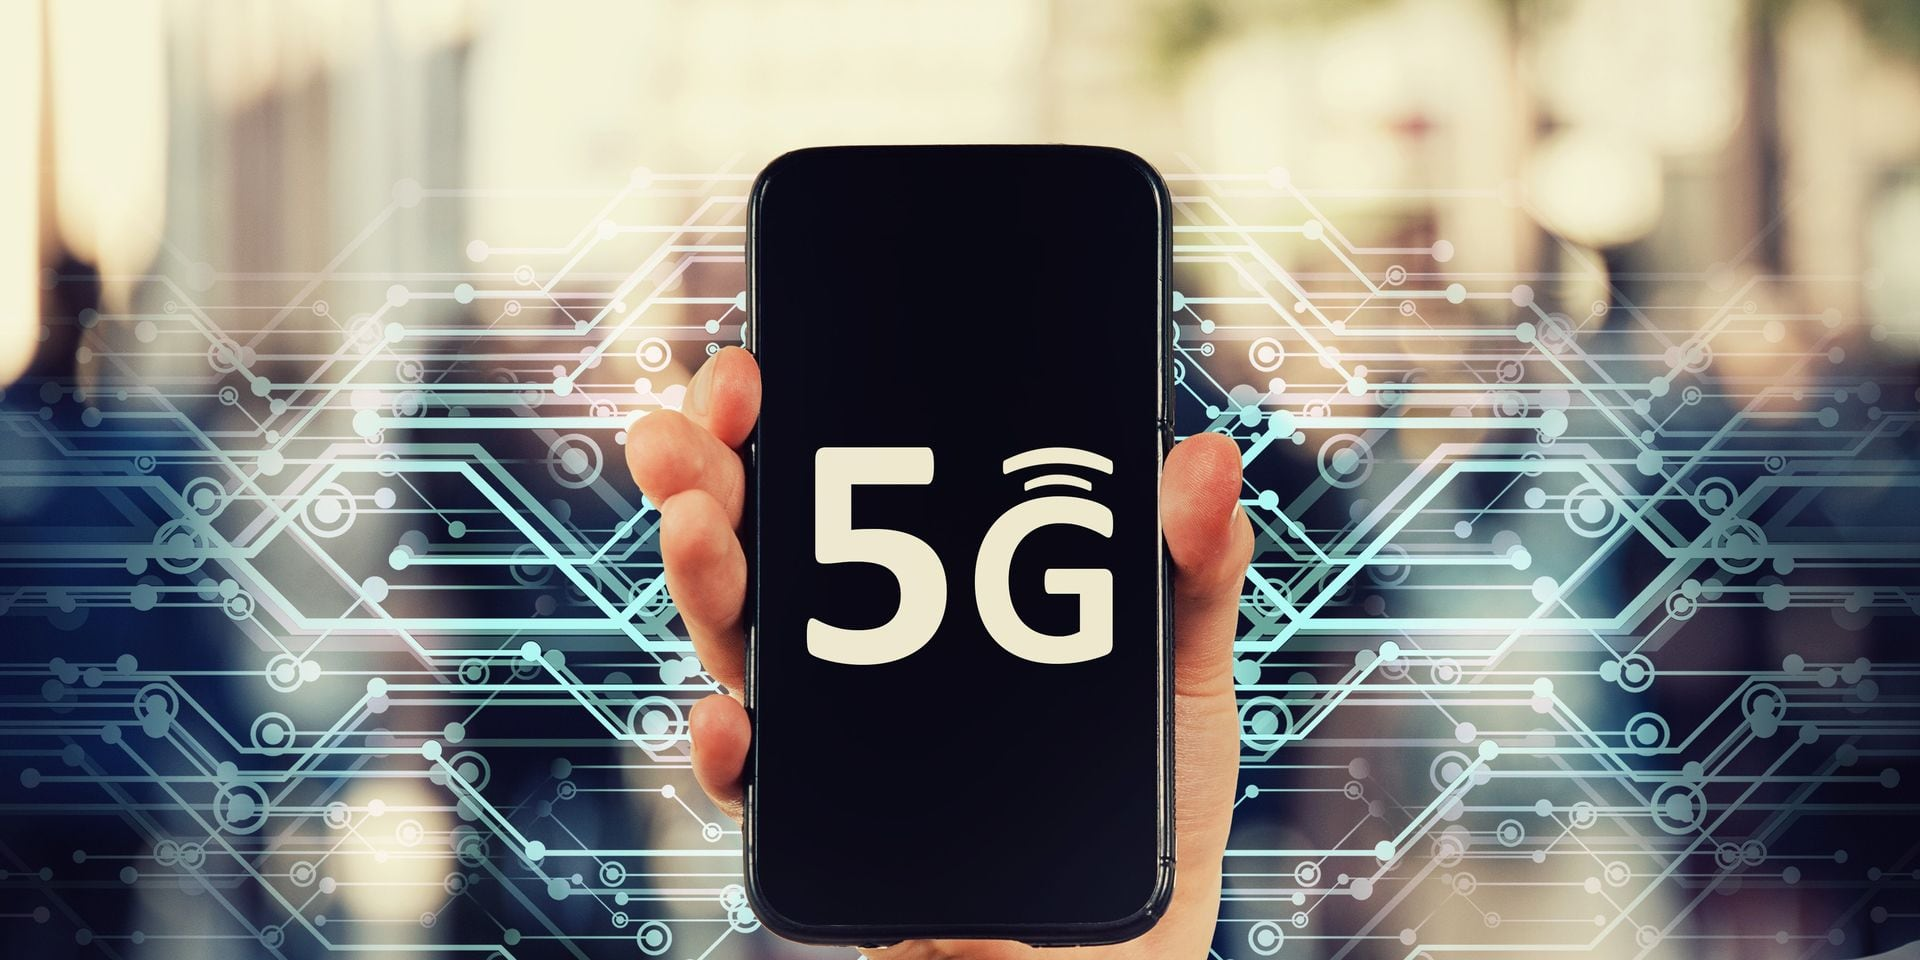 Marketing,Hand,Holding,5g,Internet,Connection,Smartphone.,New,Mobile,Phone